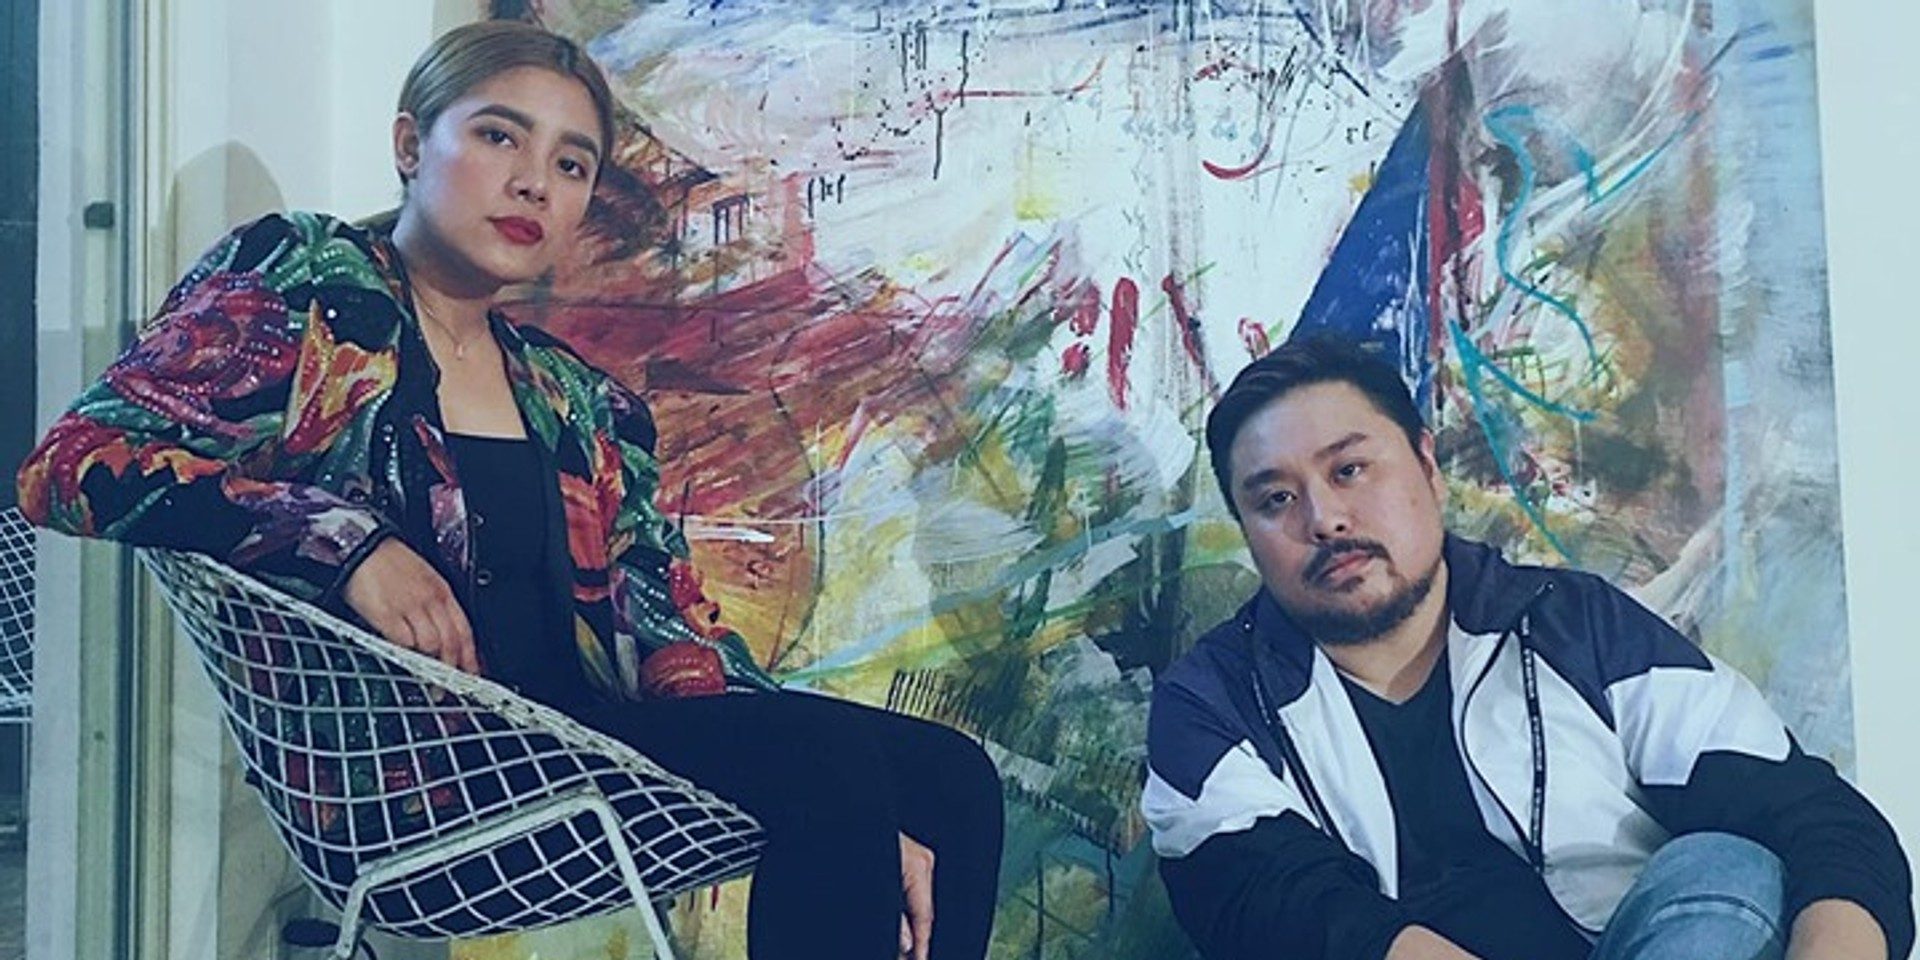 Brisom team up with Keiko Necesario on new single 'Hangad' – listen